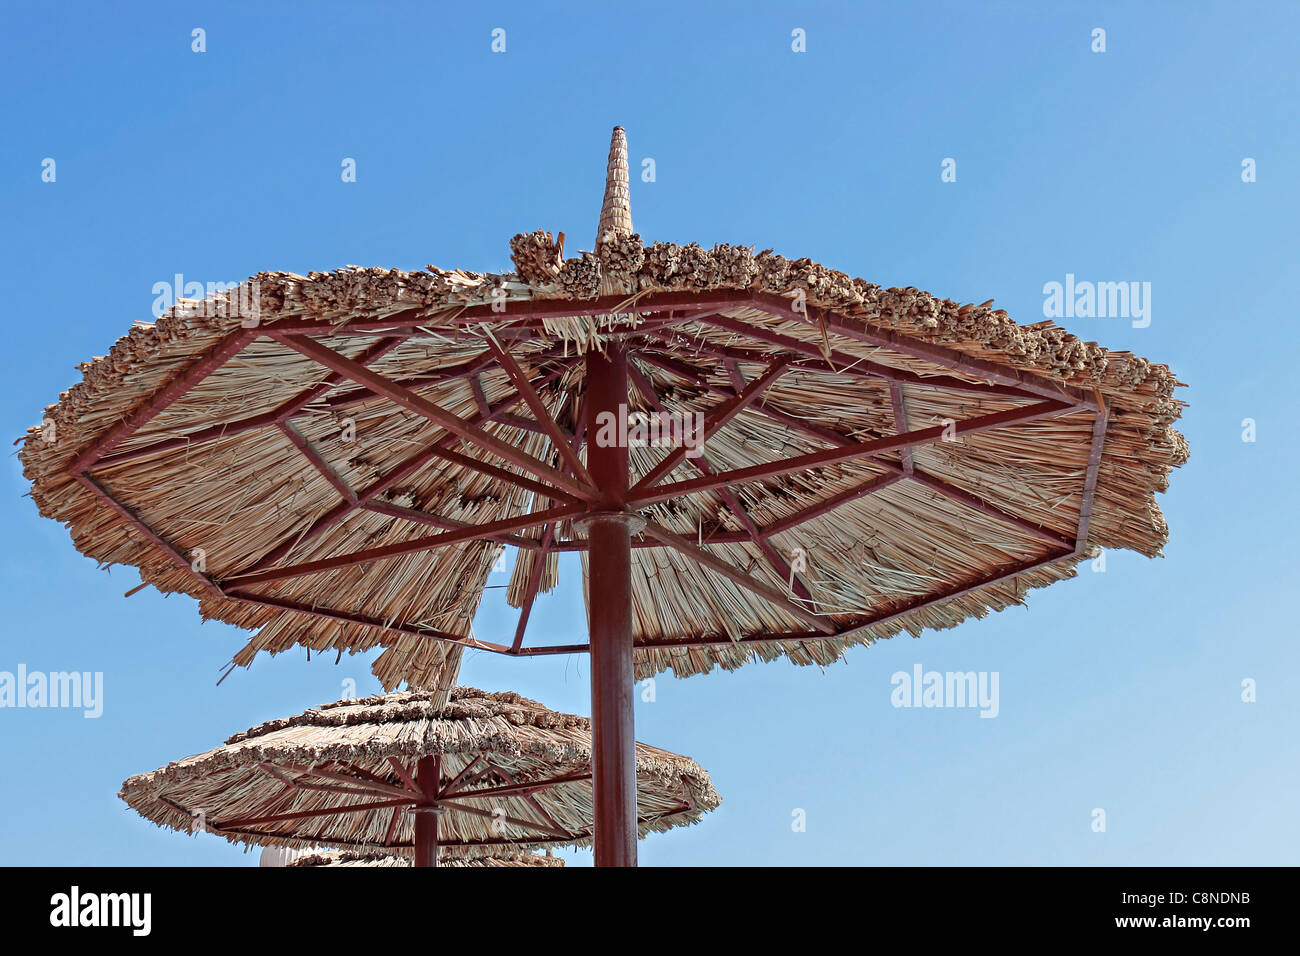 Poolside steel and reed sunshade/parasol against clear blue sky - Stock Image